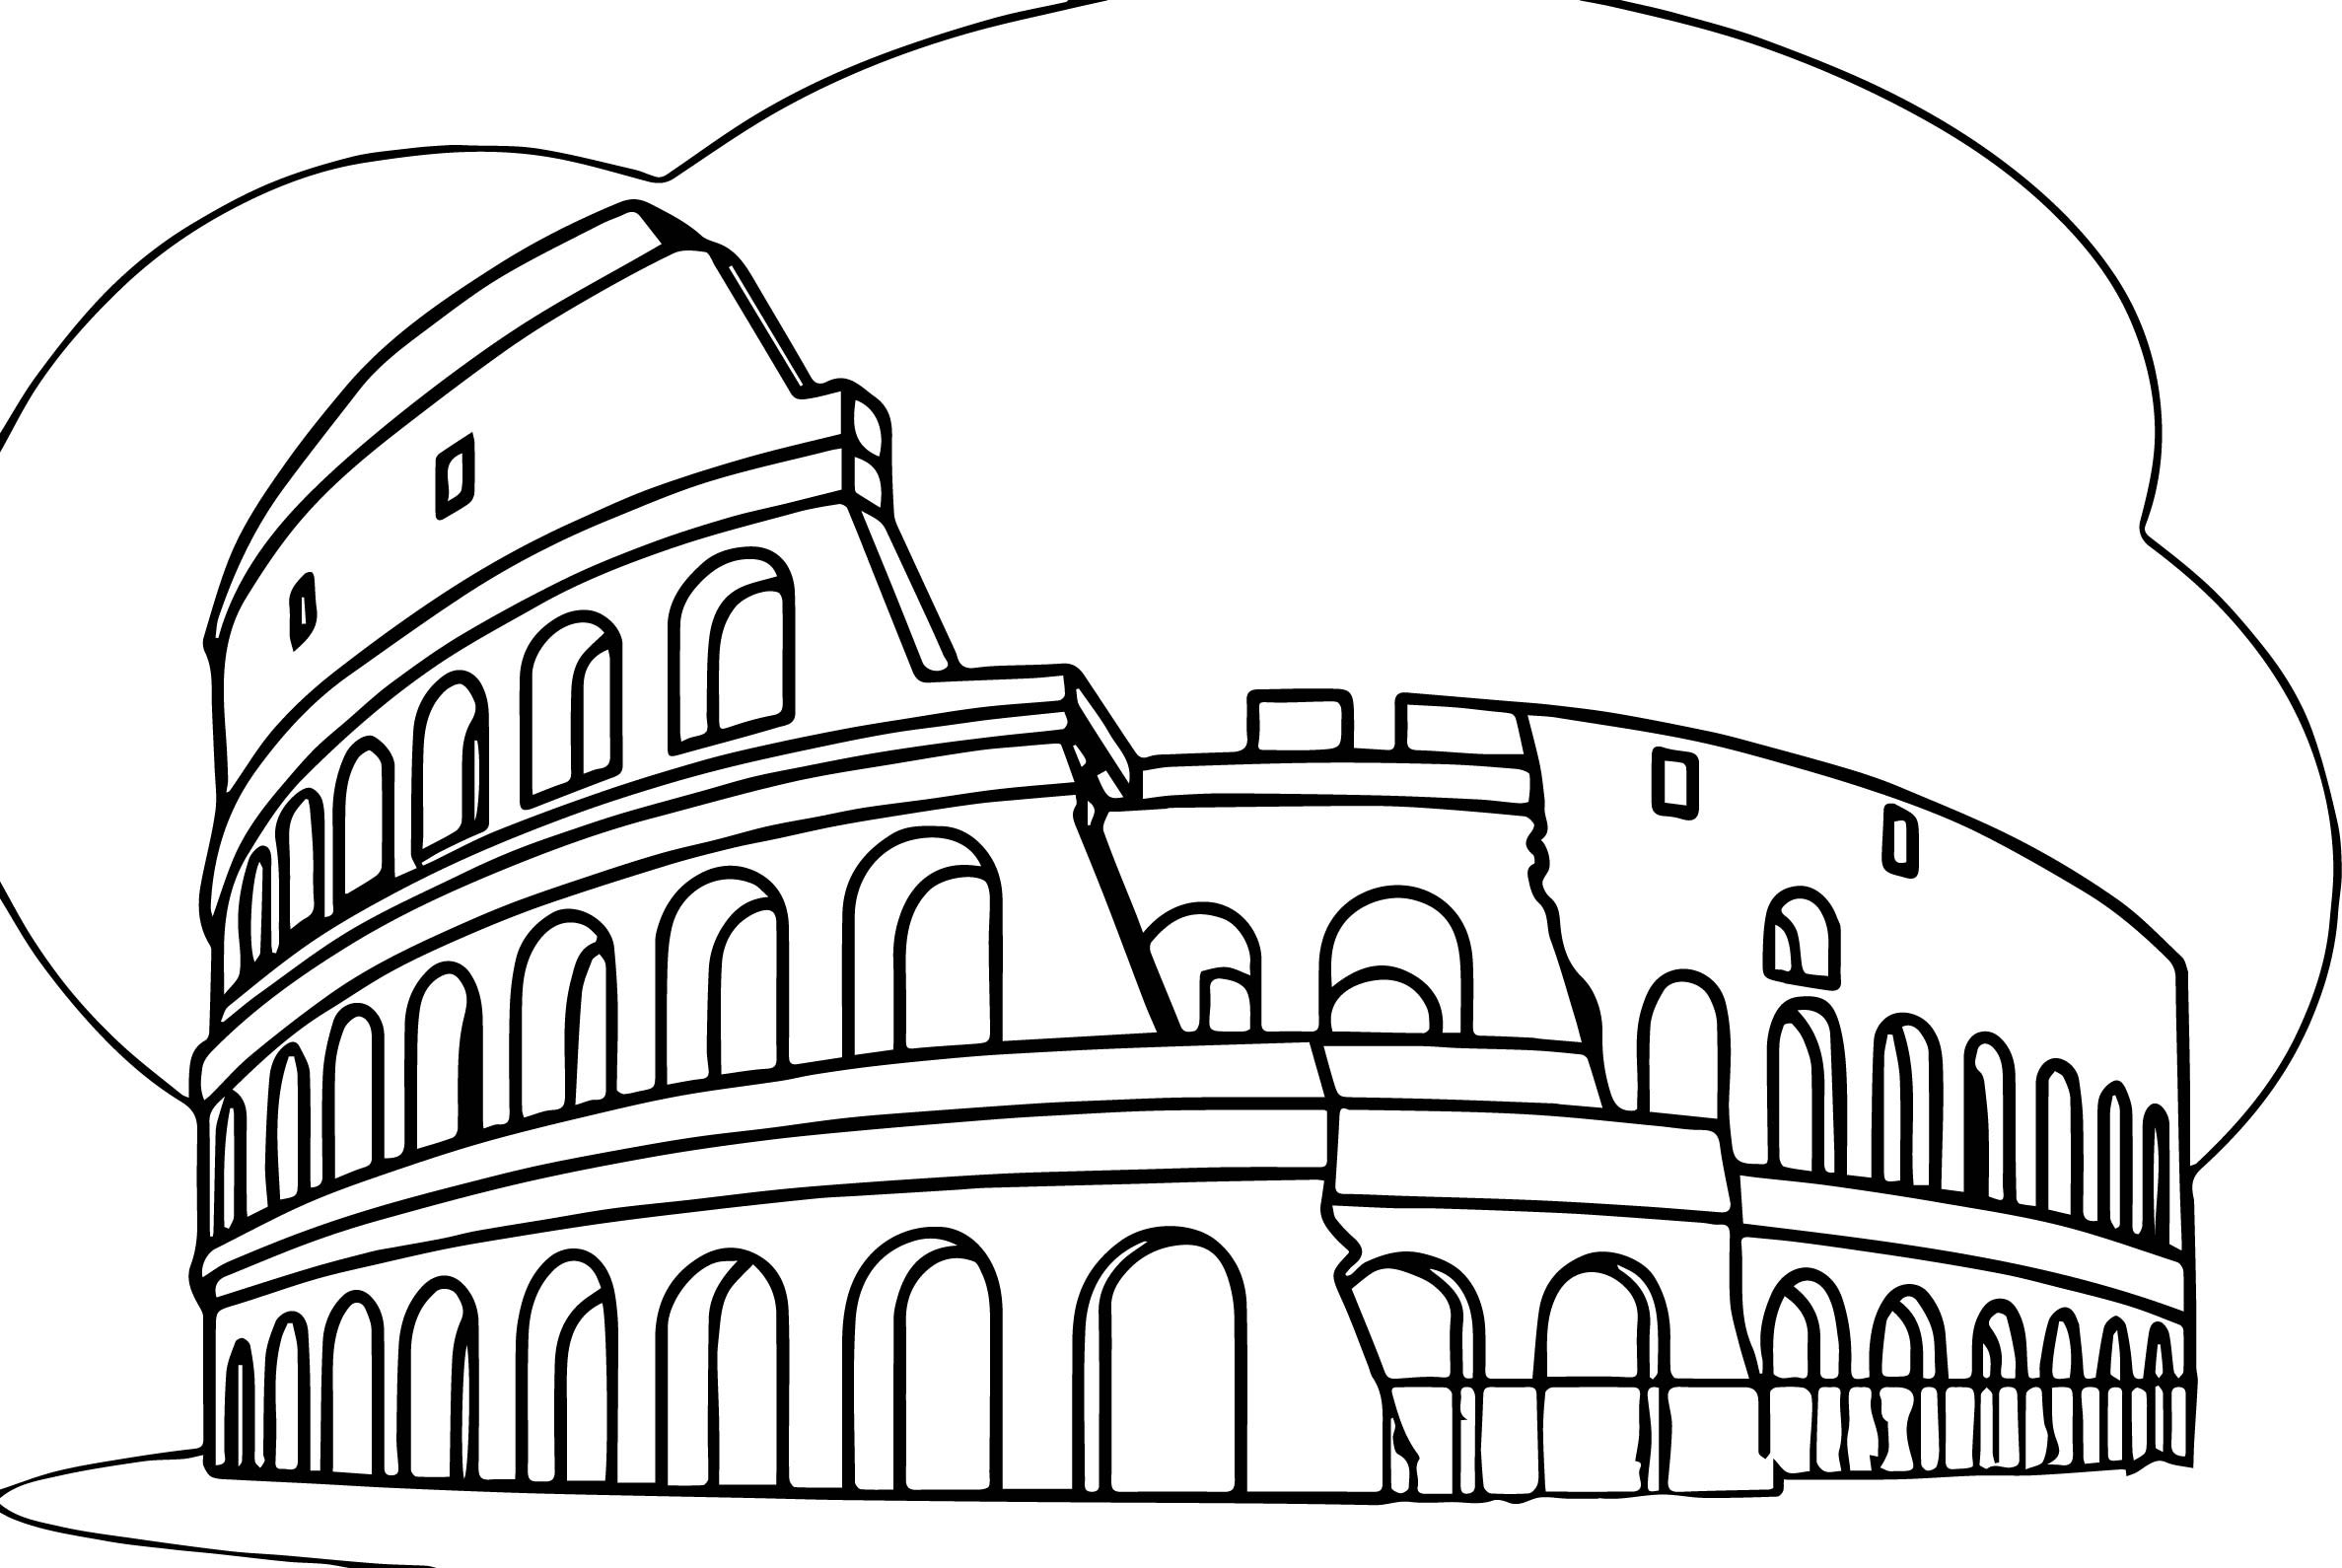 Colosseum Coloring Page At Getcolorings